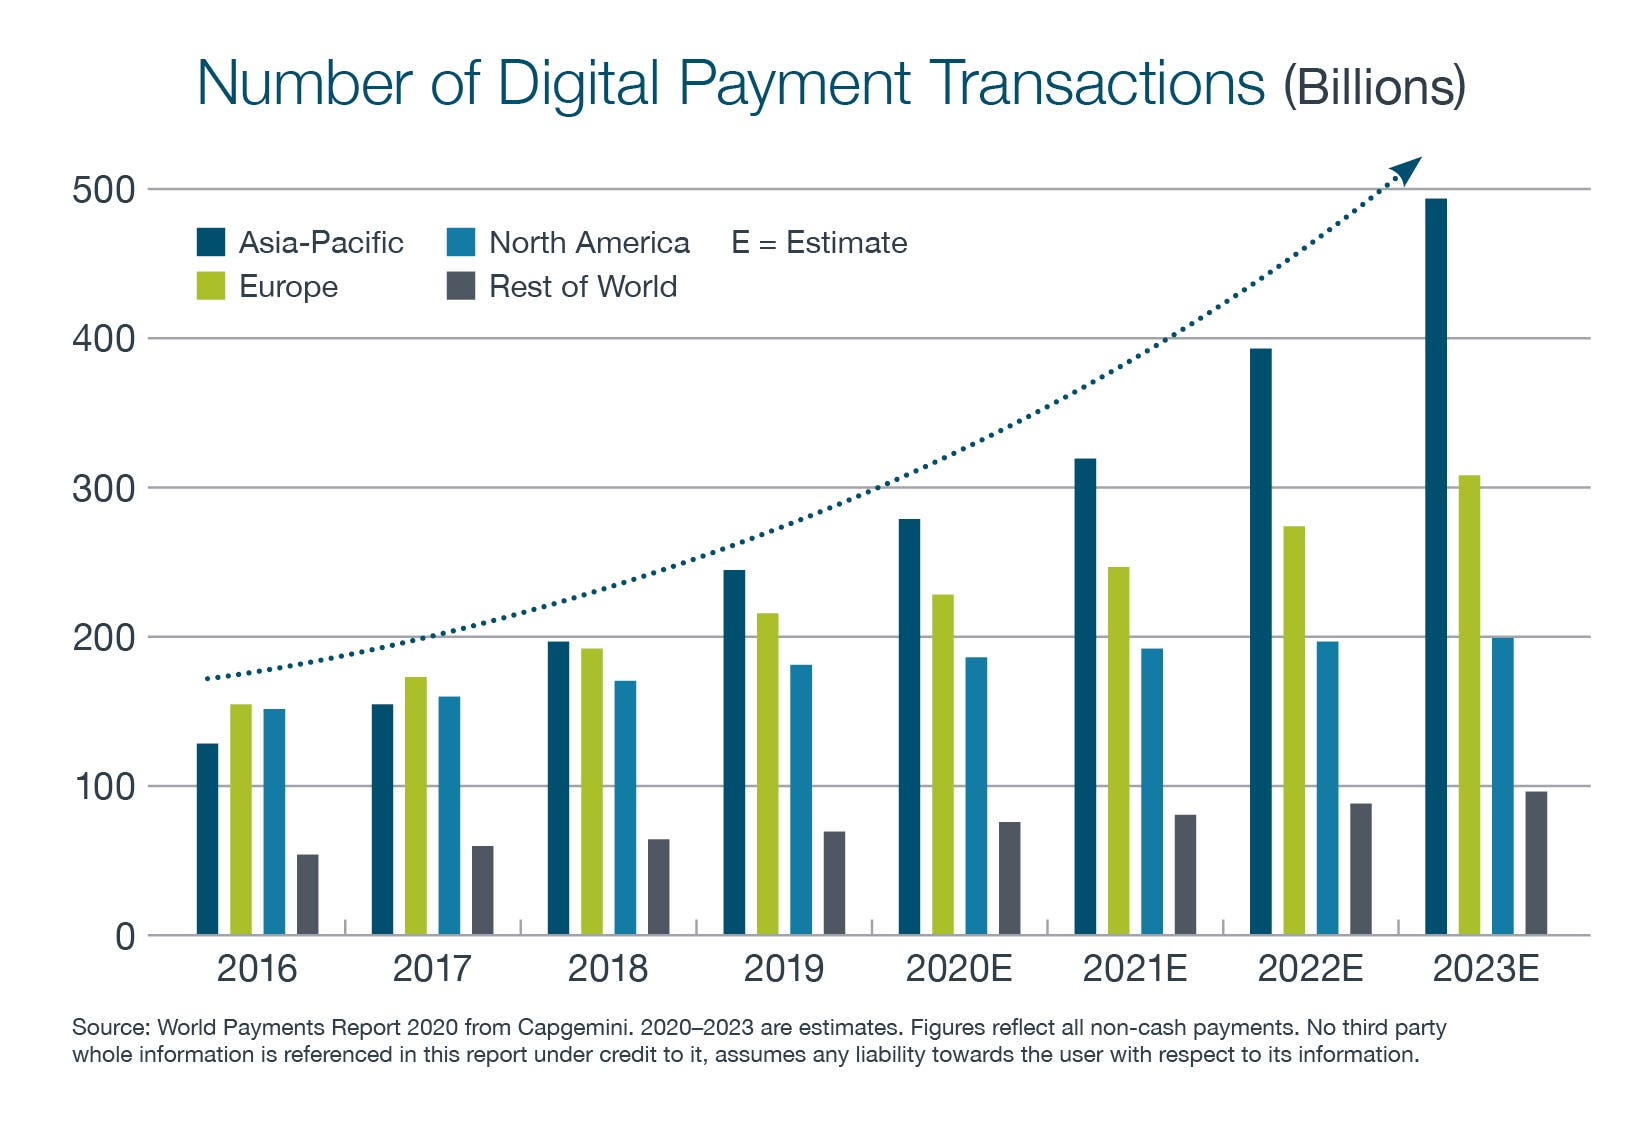 Graph showing the increase in number of digital payment transactions from 2016 to a predication for 2023 - Bar graph colors are dark blue to represent Asia-Pacific, Green to represent Europe, and Light blue to represent North America, and Grey to represent the rest of the world.